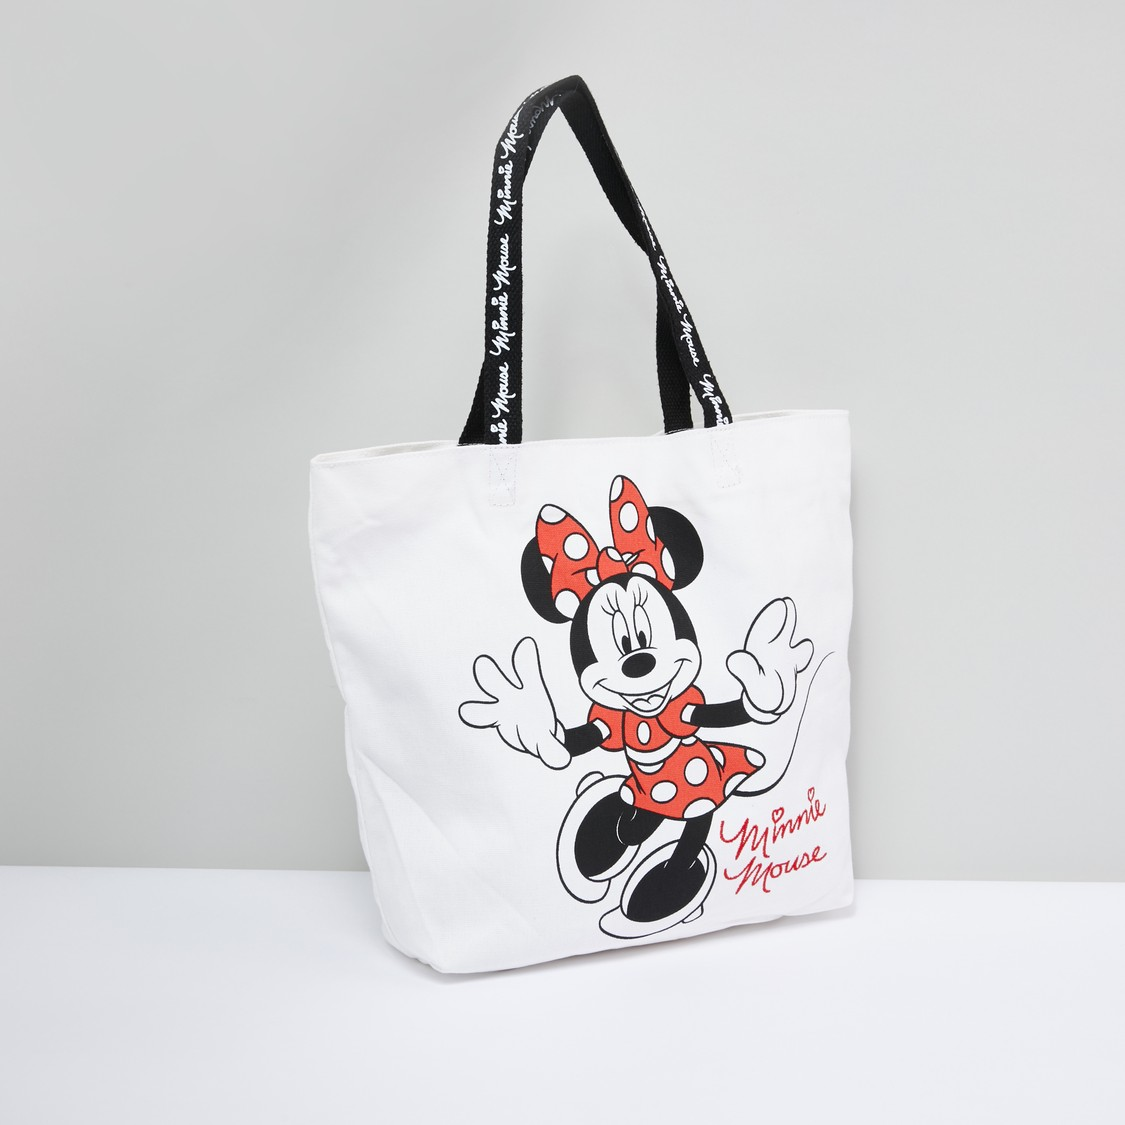 Minnie Mouse Printed Handbag with Twin Handles